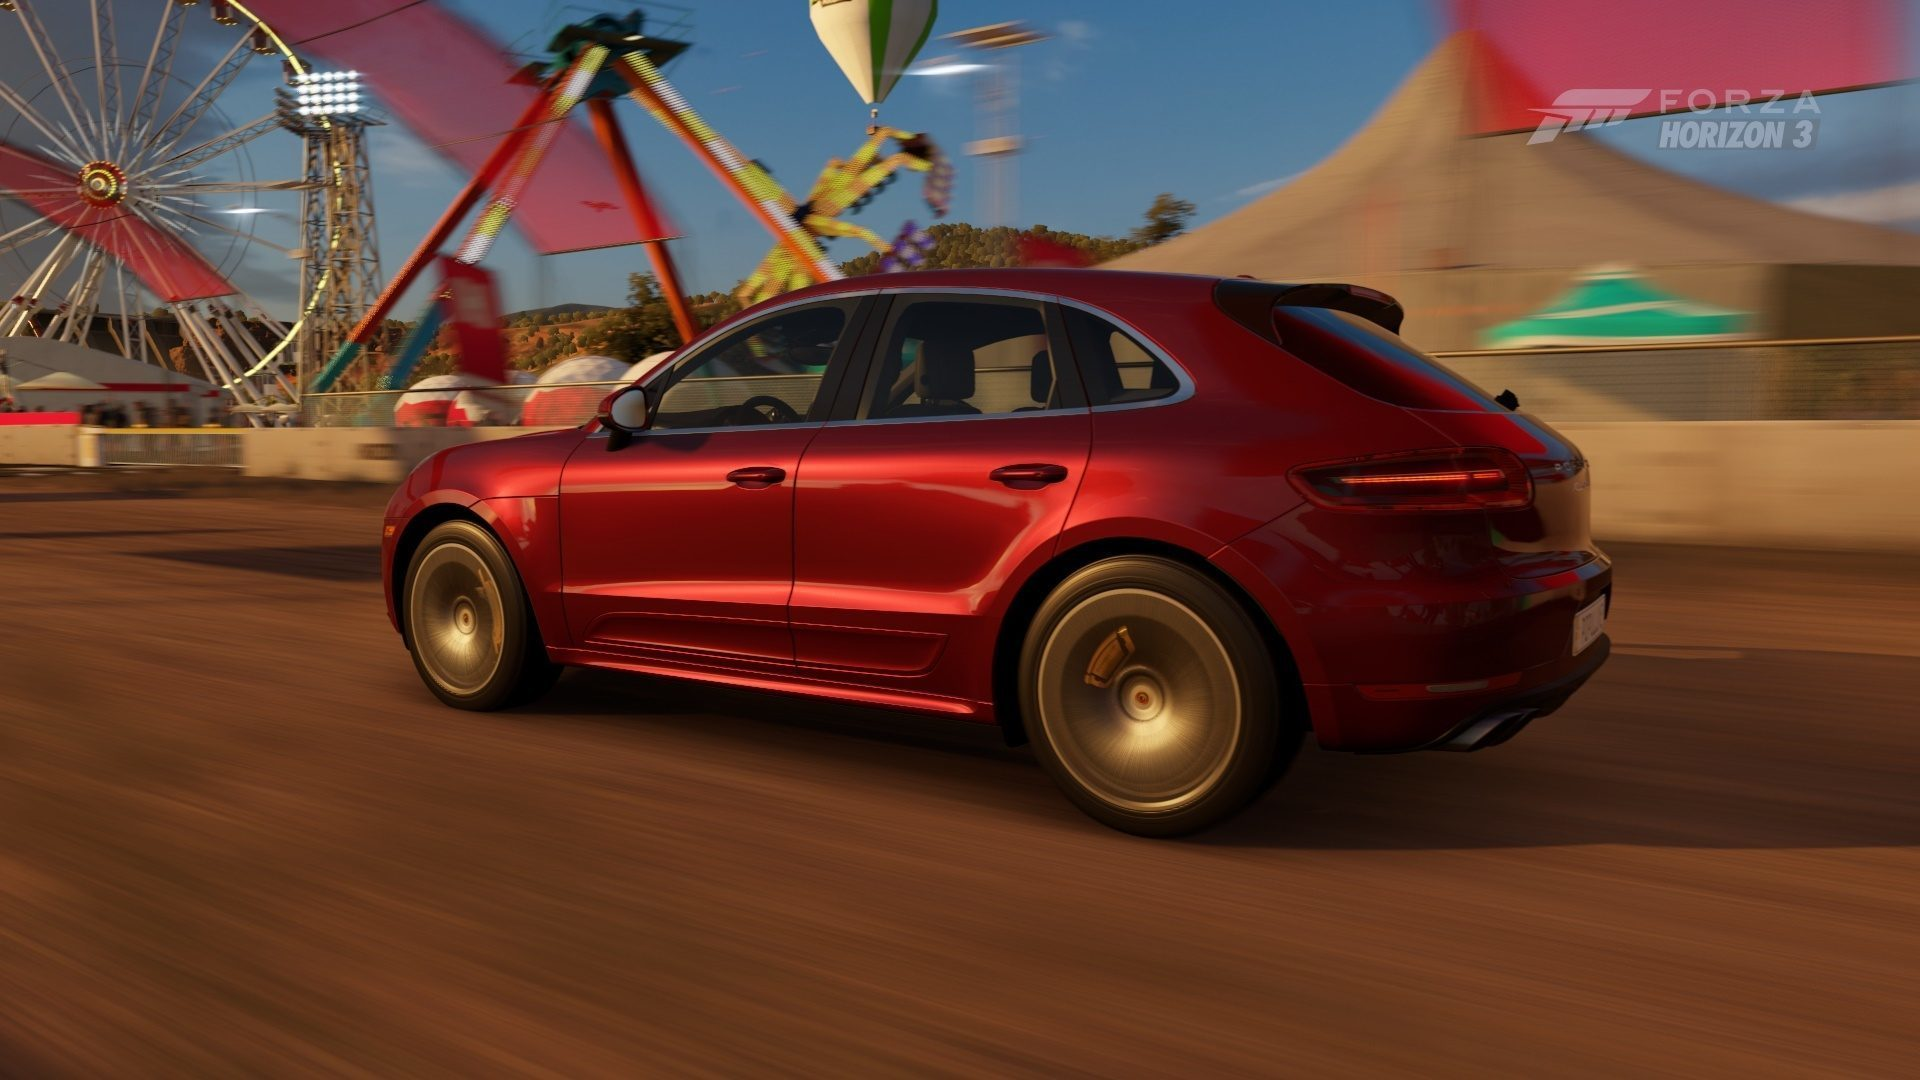 latest forzathon promises a relaxing weekend with the porsche macan auto breaking news. Black Bedroom Furniture Sets. Home Design Ideas